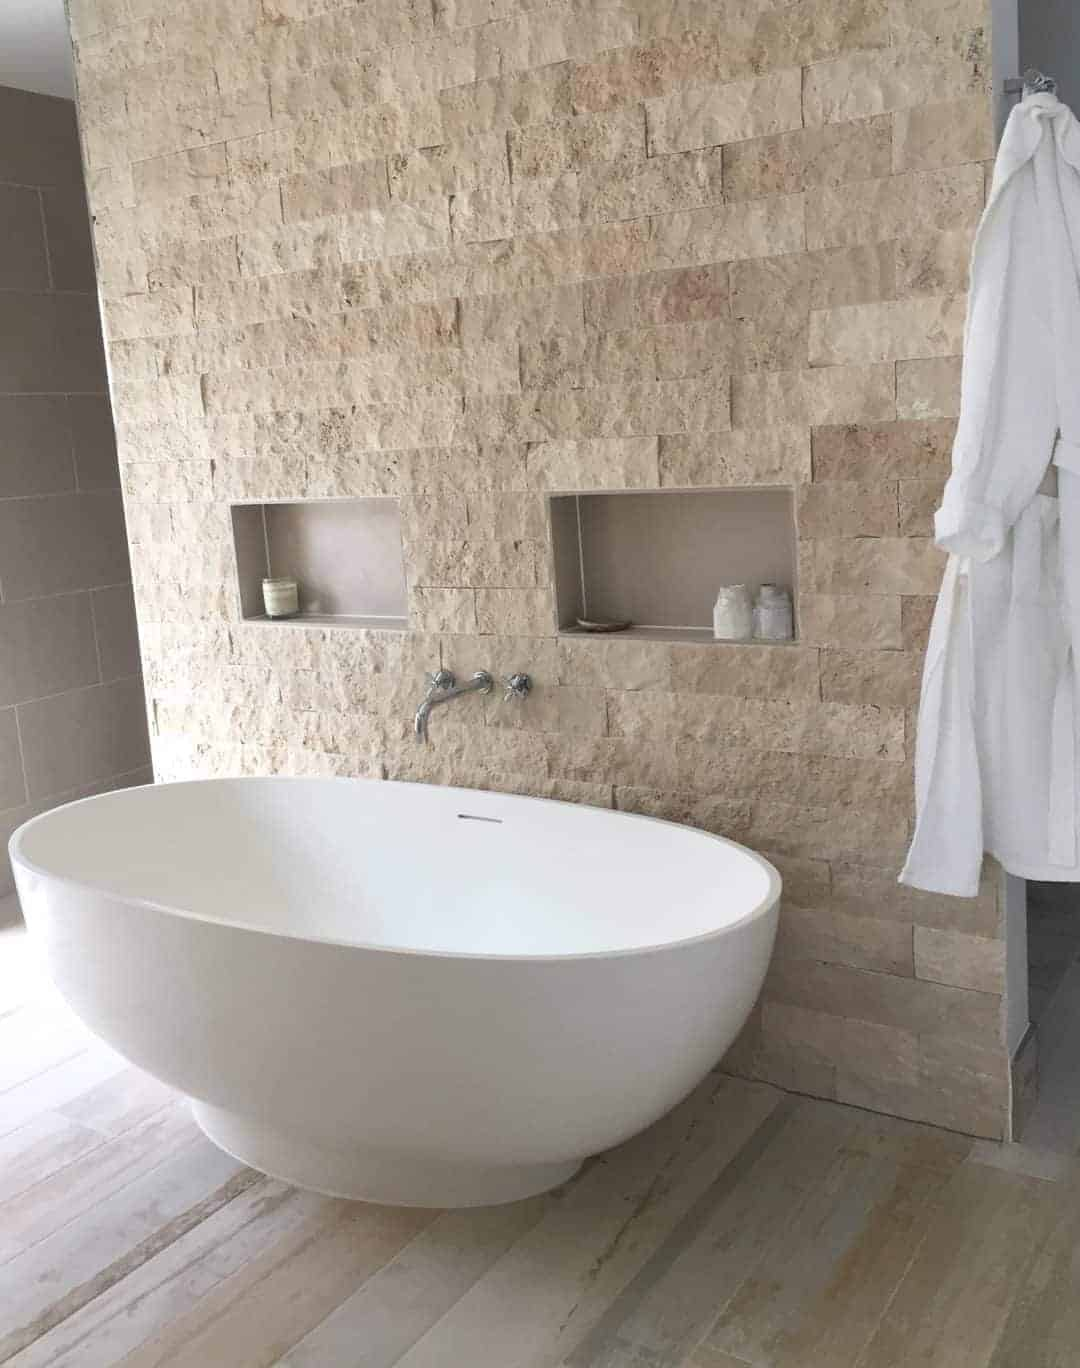 beautiful limestone and driftwood bathroom at sea edge downderry cornwall click through for more beautiful images of this coastal dream home and other great finds in the area